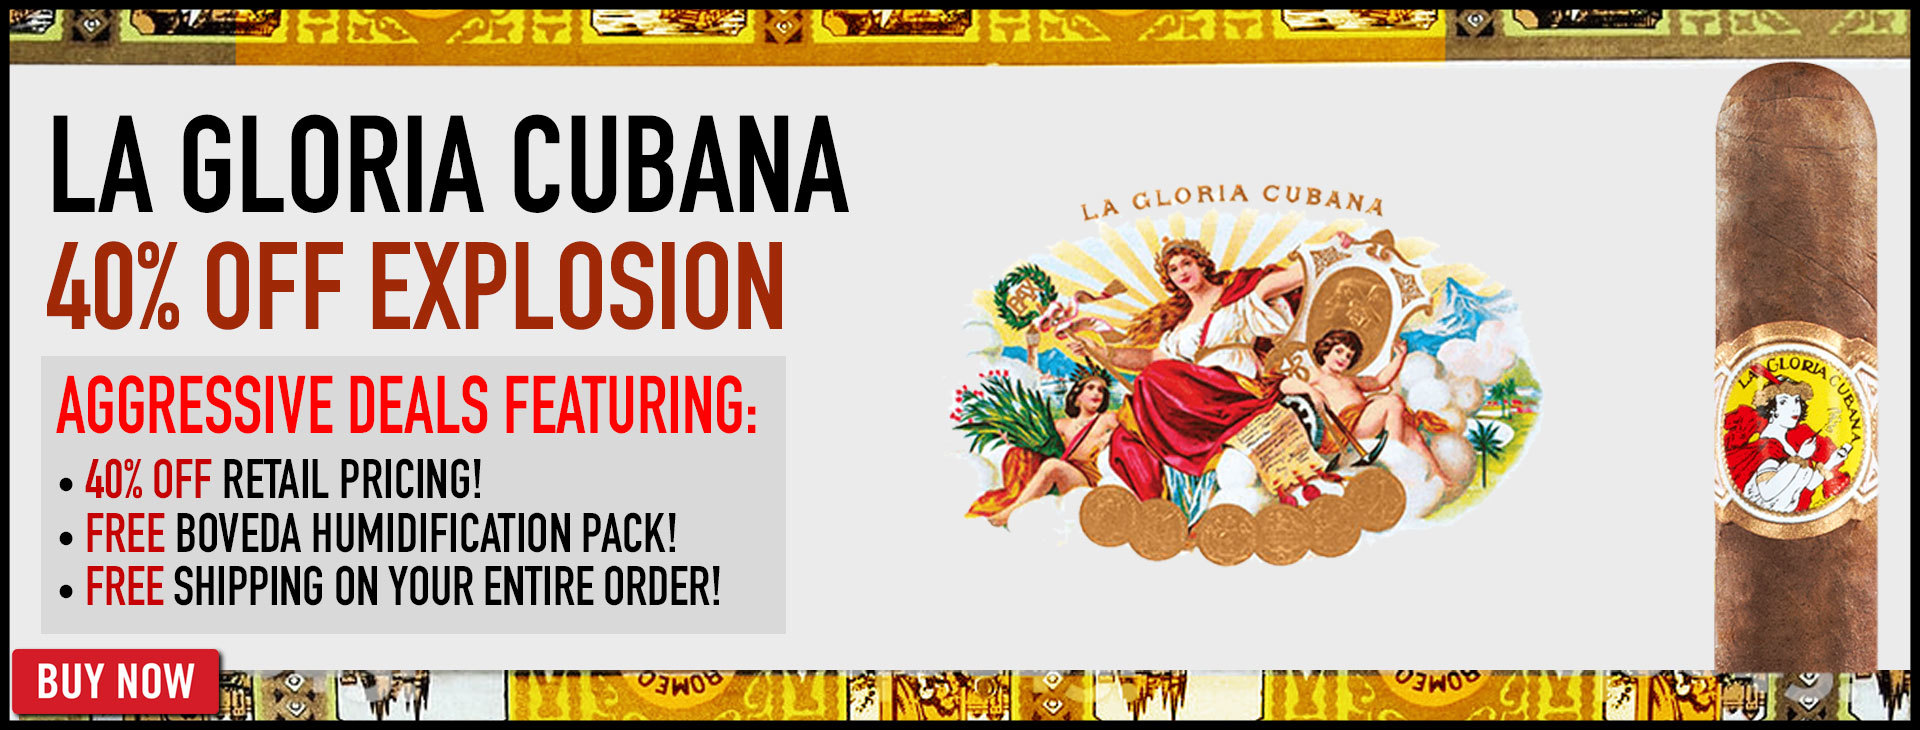 40% OFF La Gloria Cubana - 24 HOURS ONLY!